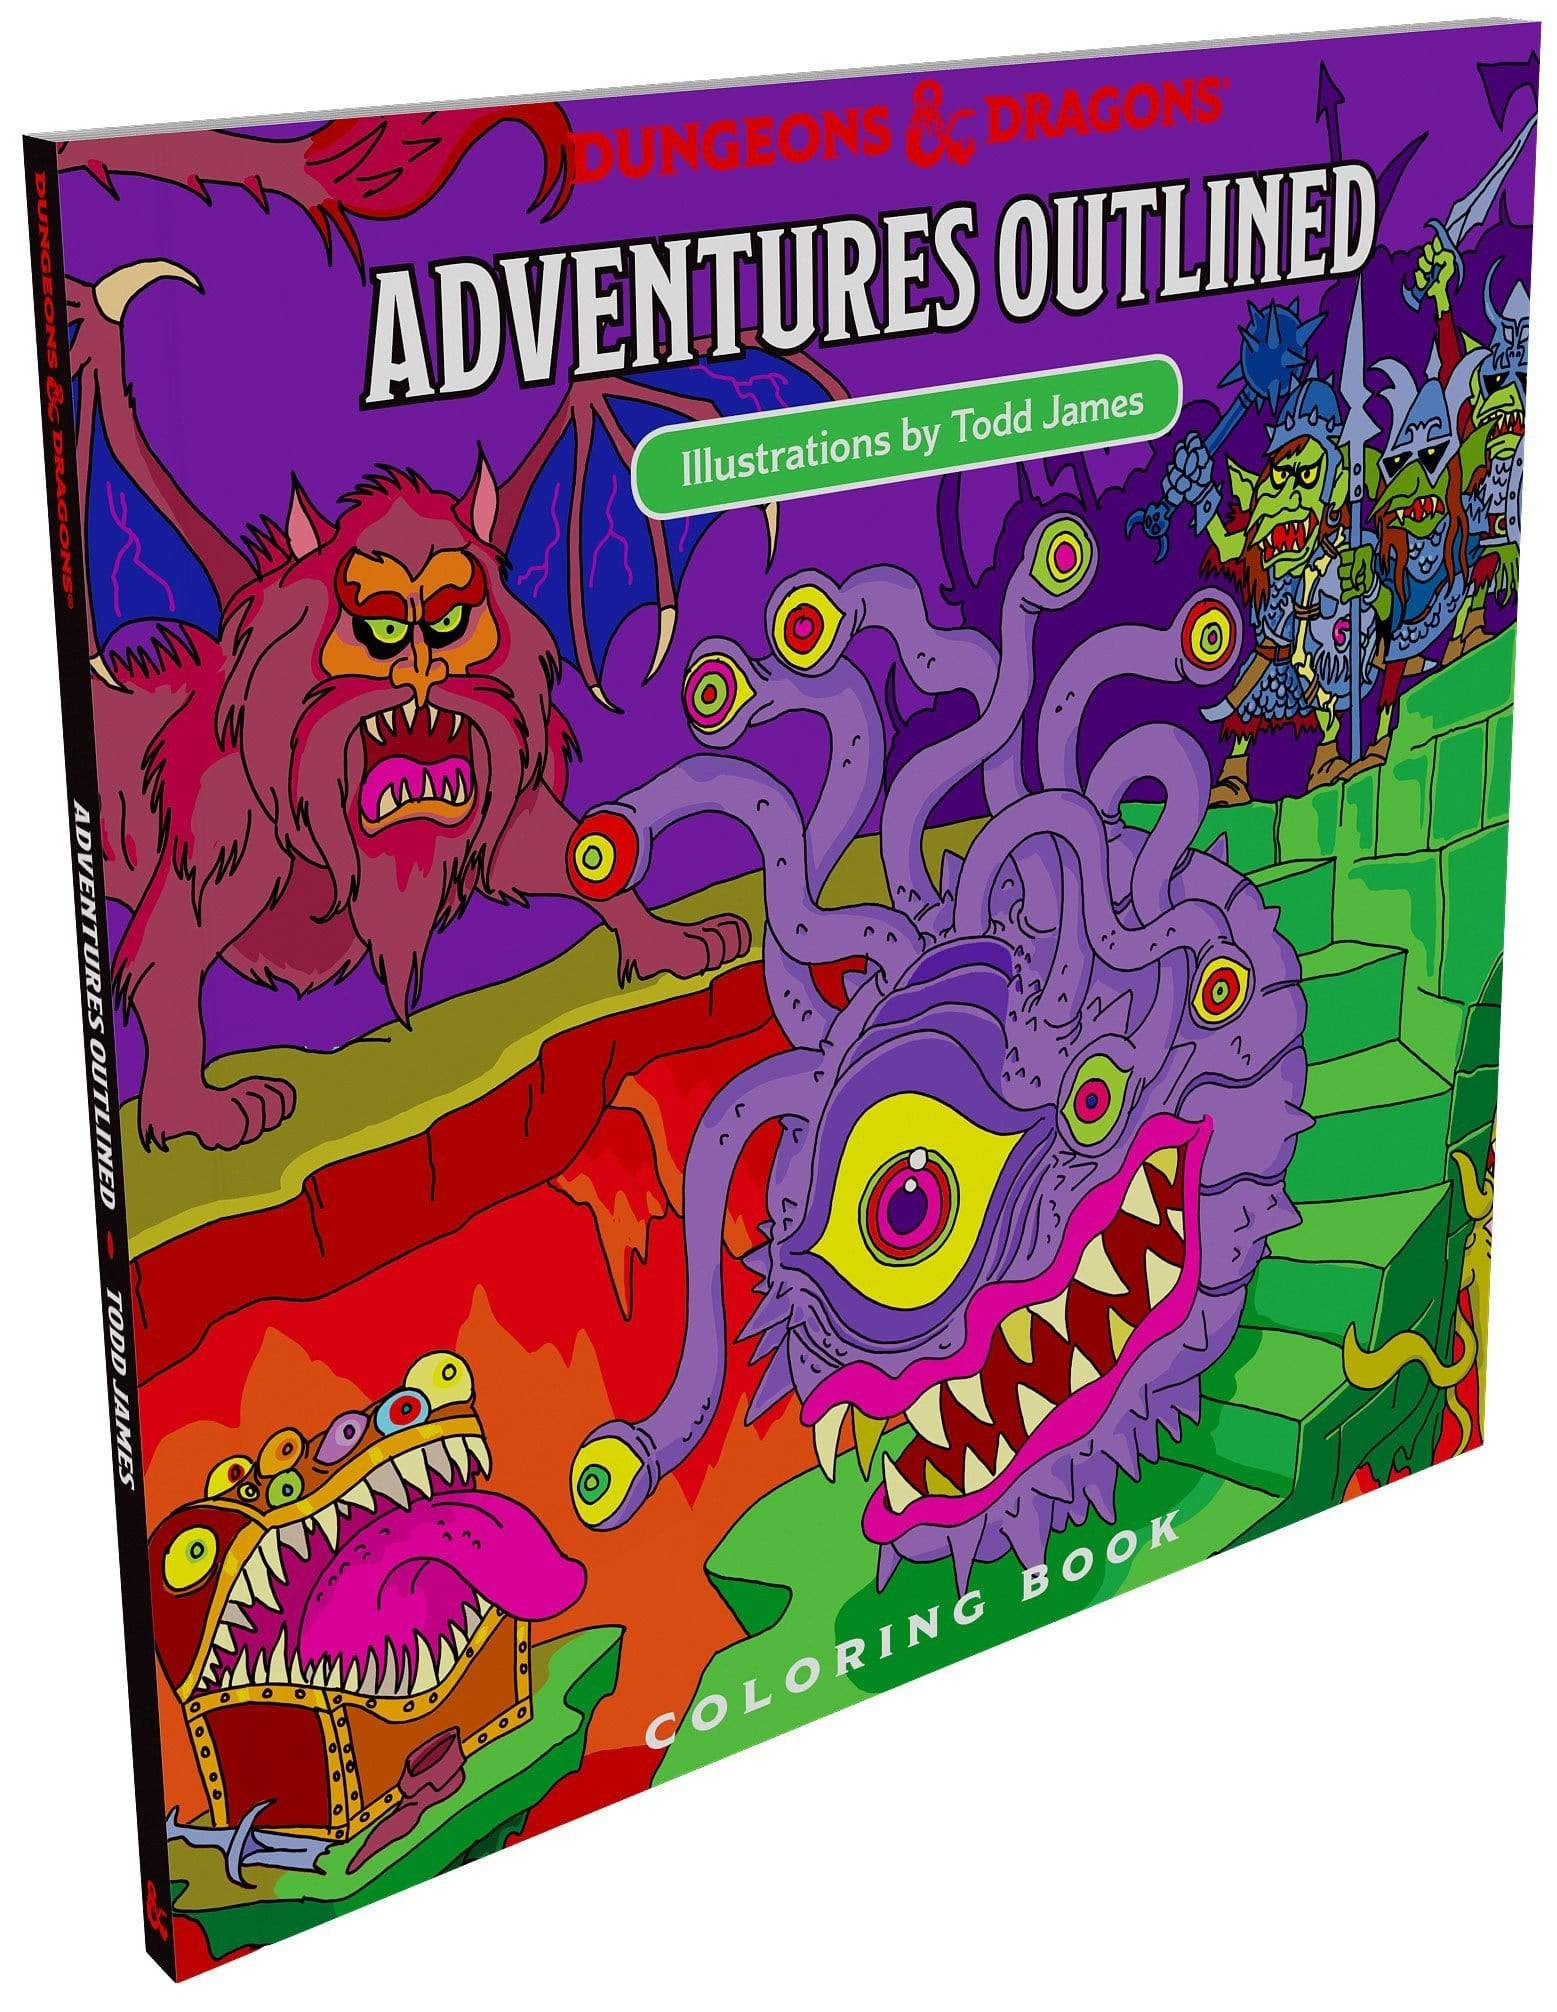 D&D: Adventures Outlined Coloring Book Wizards of the Coast Books